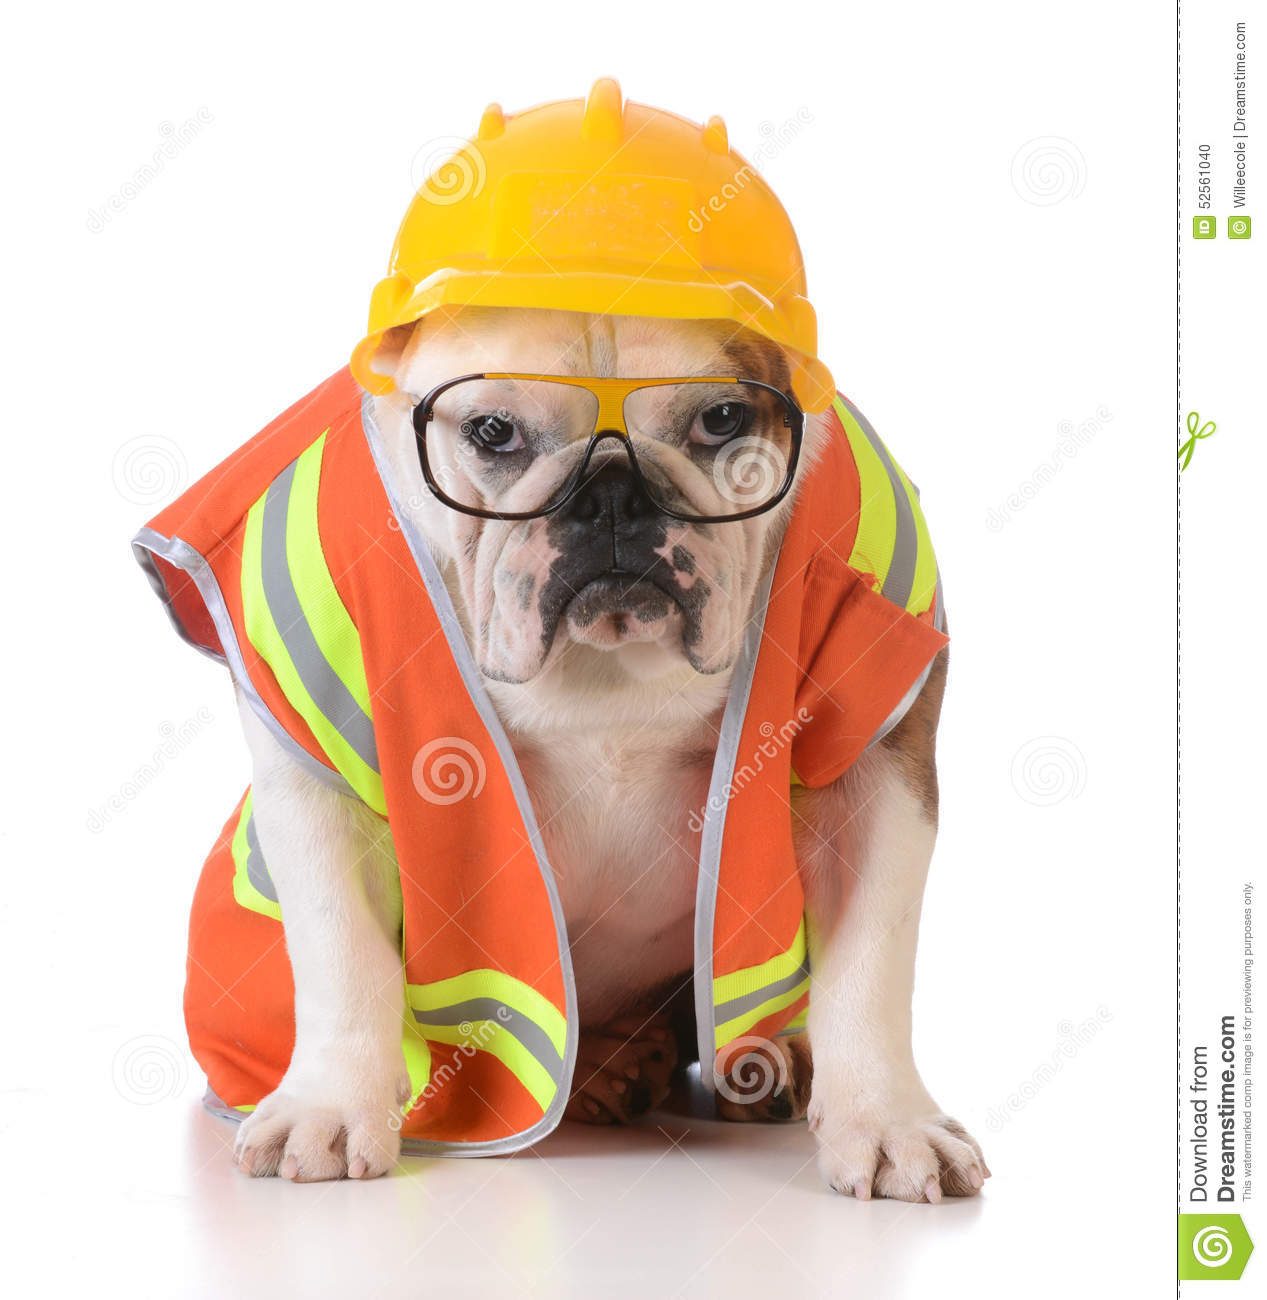 Dog Construction Worker Clipart.